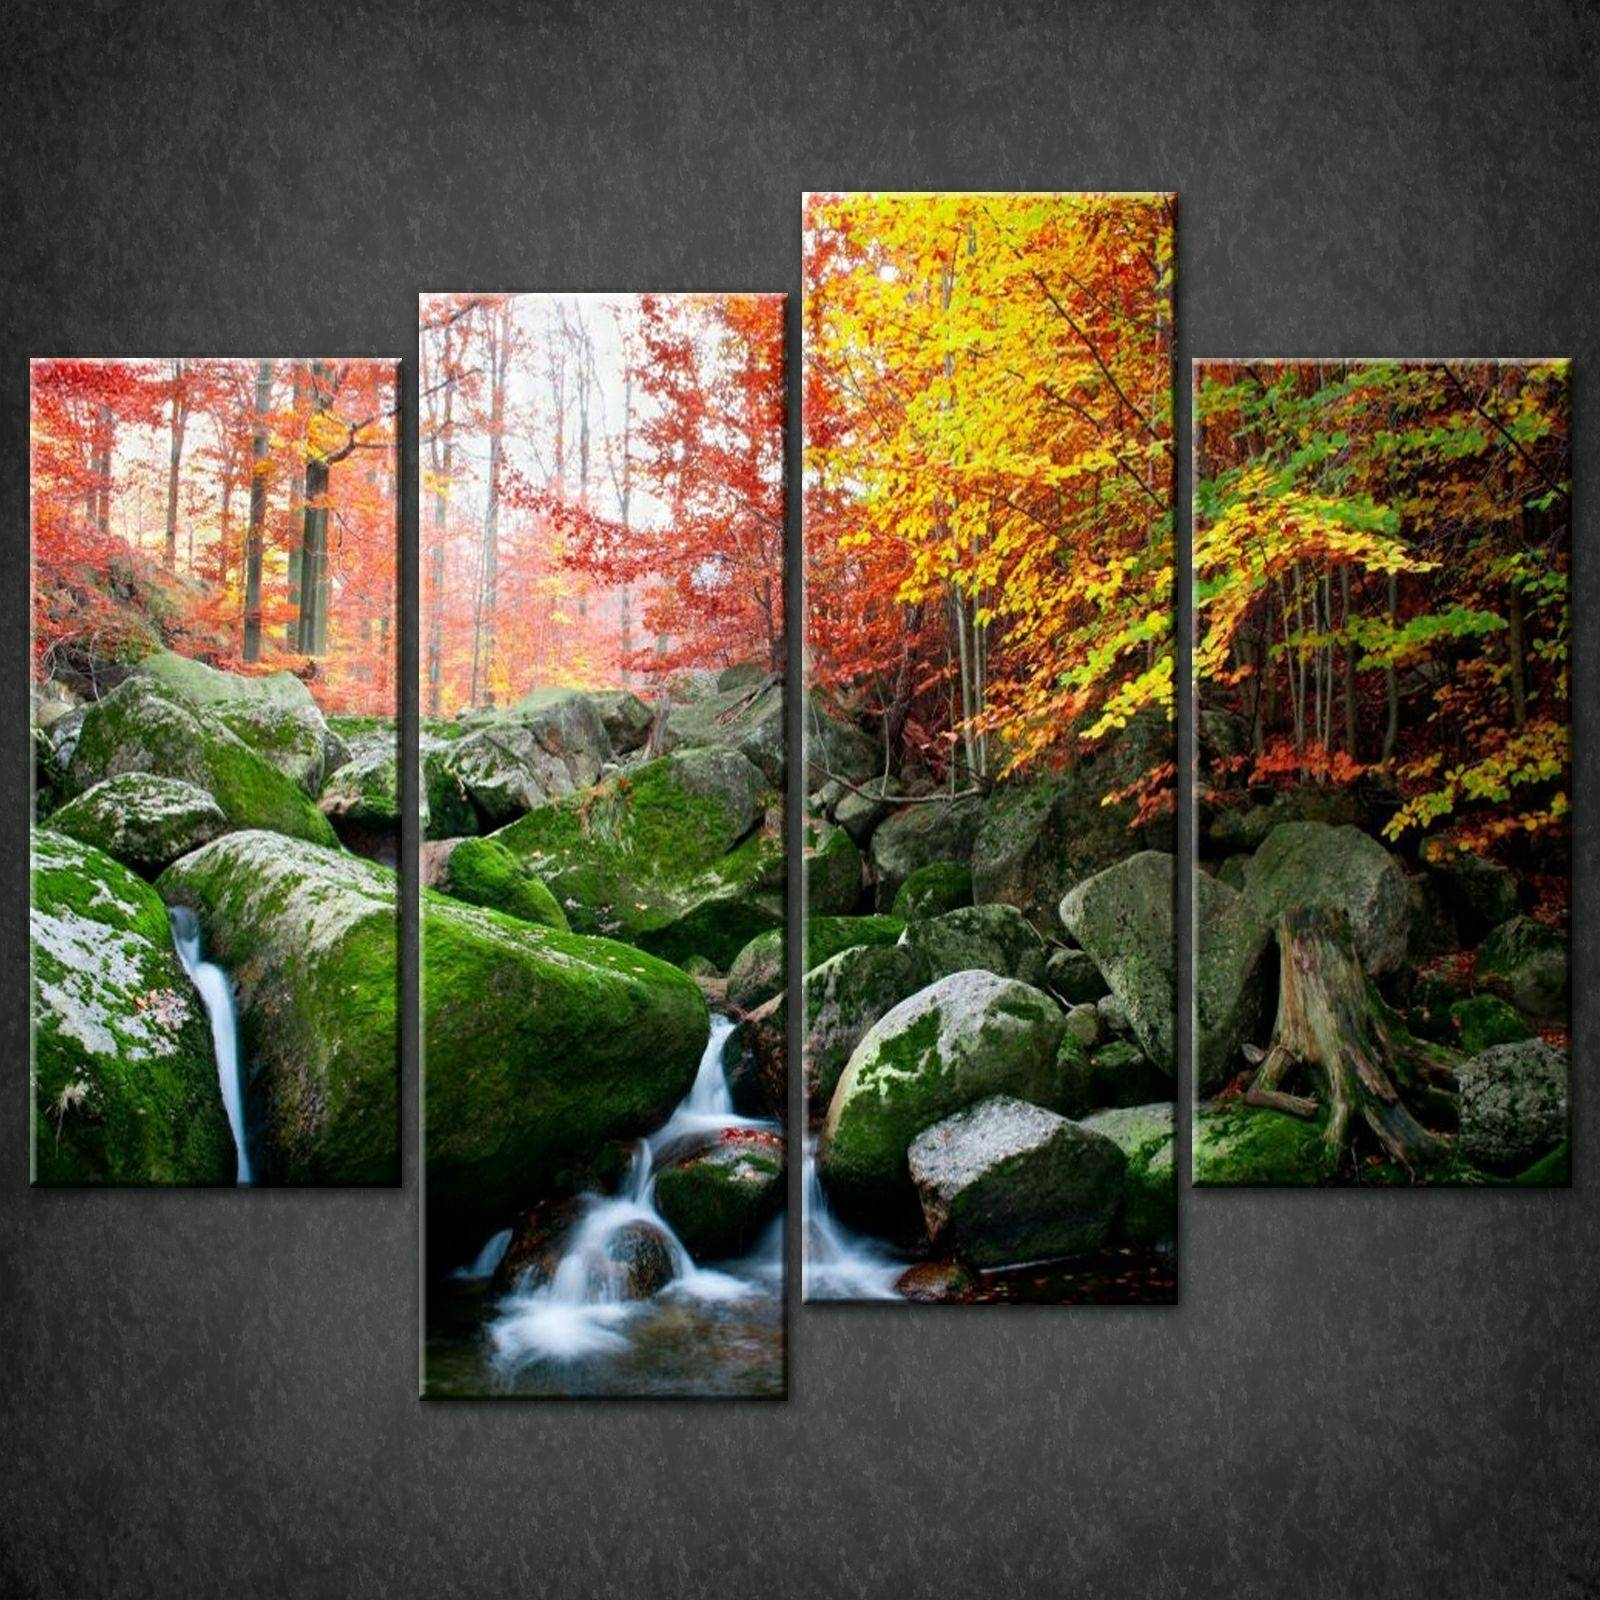 Decor: River Autumn Forest Split Canvas Wall Art Pictures Prints With Regard To 2018 Canvas Landscape Wall Art (View 13 of 20)